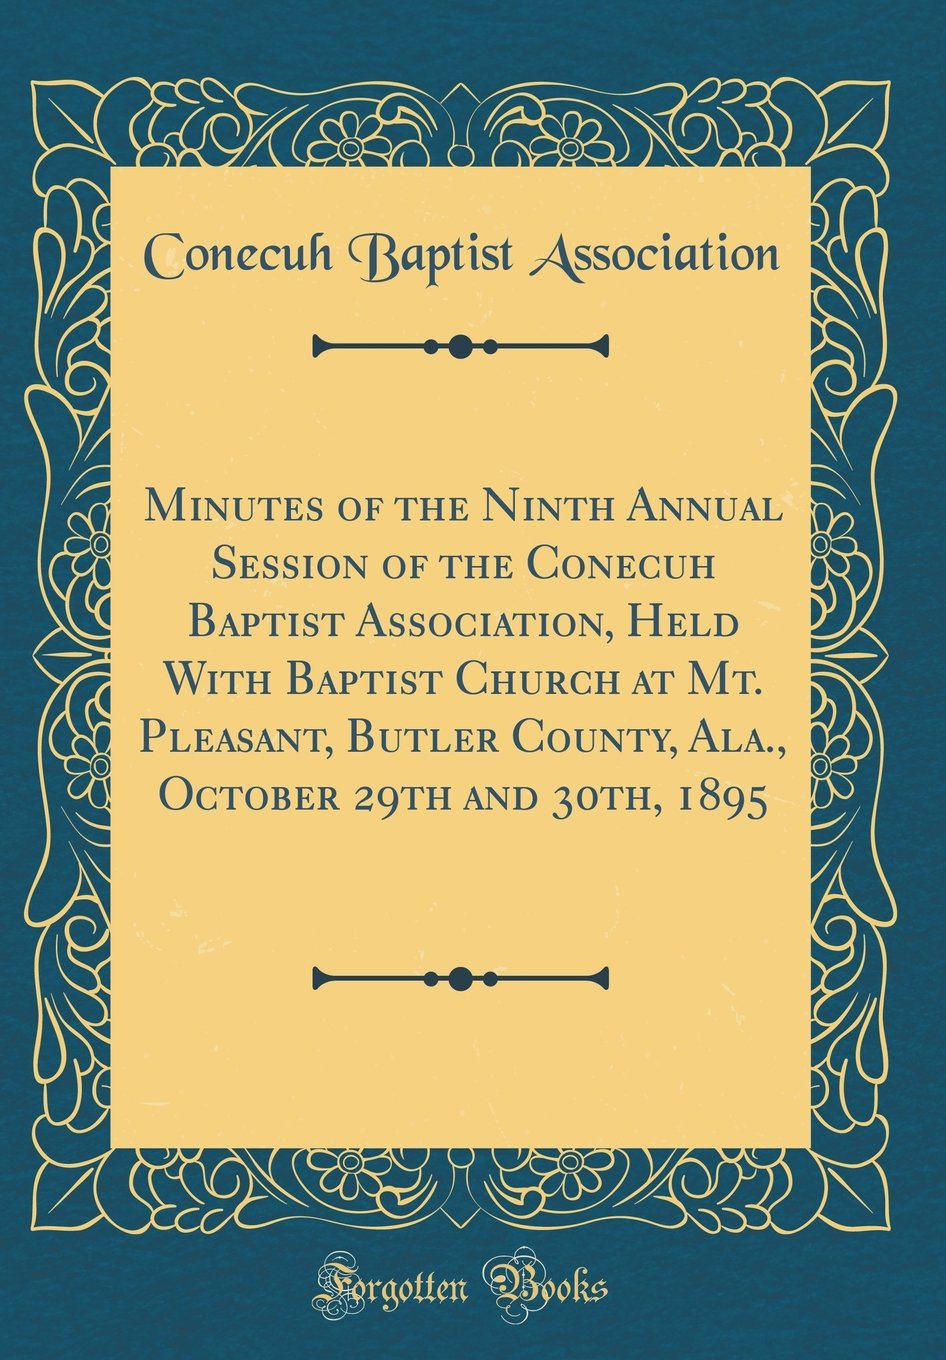 Download Minutes of the Ninth Annual Session of the Conecuh Baptist Association, Held With Baptist Church at Mt. Pleasant, Butler County, Ala., October 29th and 30th, 1895 (Classic Reprint) pdf epub